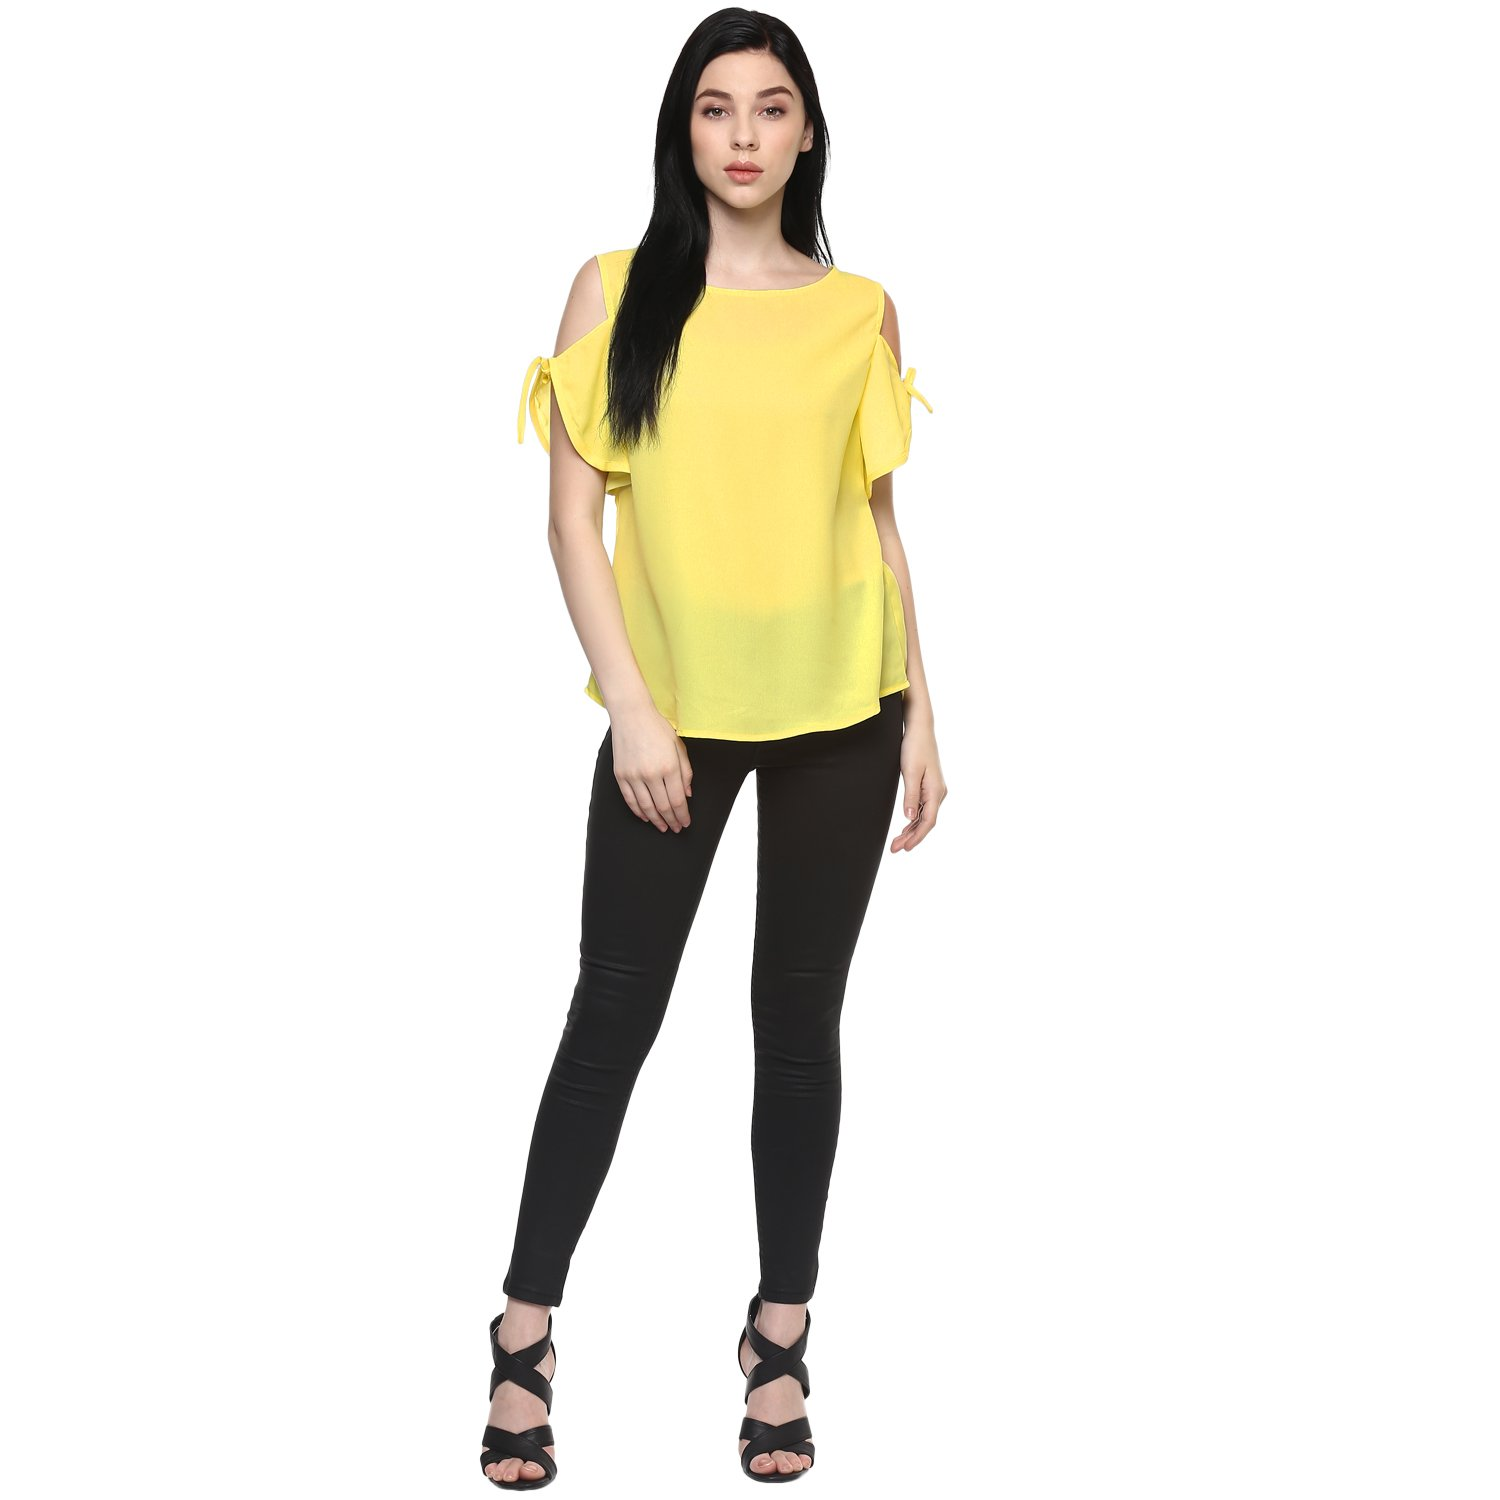 a98a813b027aa Pannkh Solid Tie-Up Cold Shoulder Women s Top  Amazon.in  Clothing    Accessories